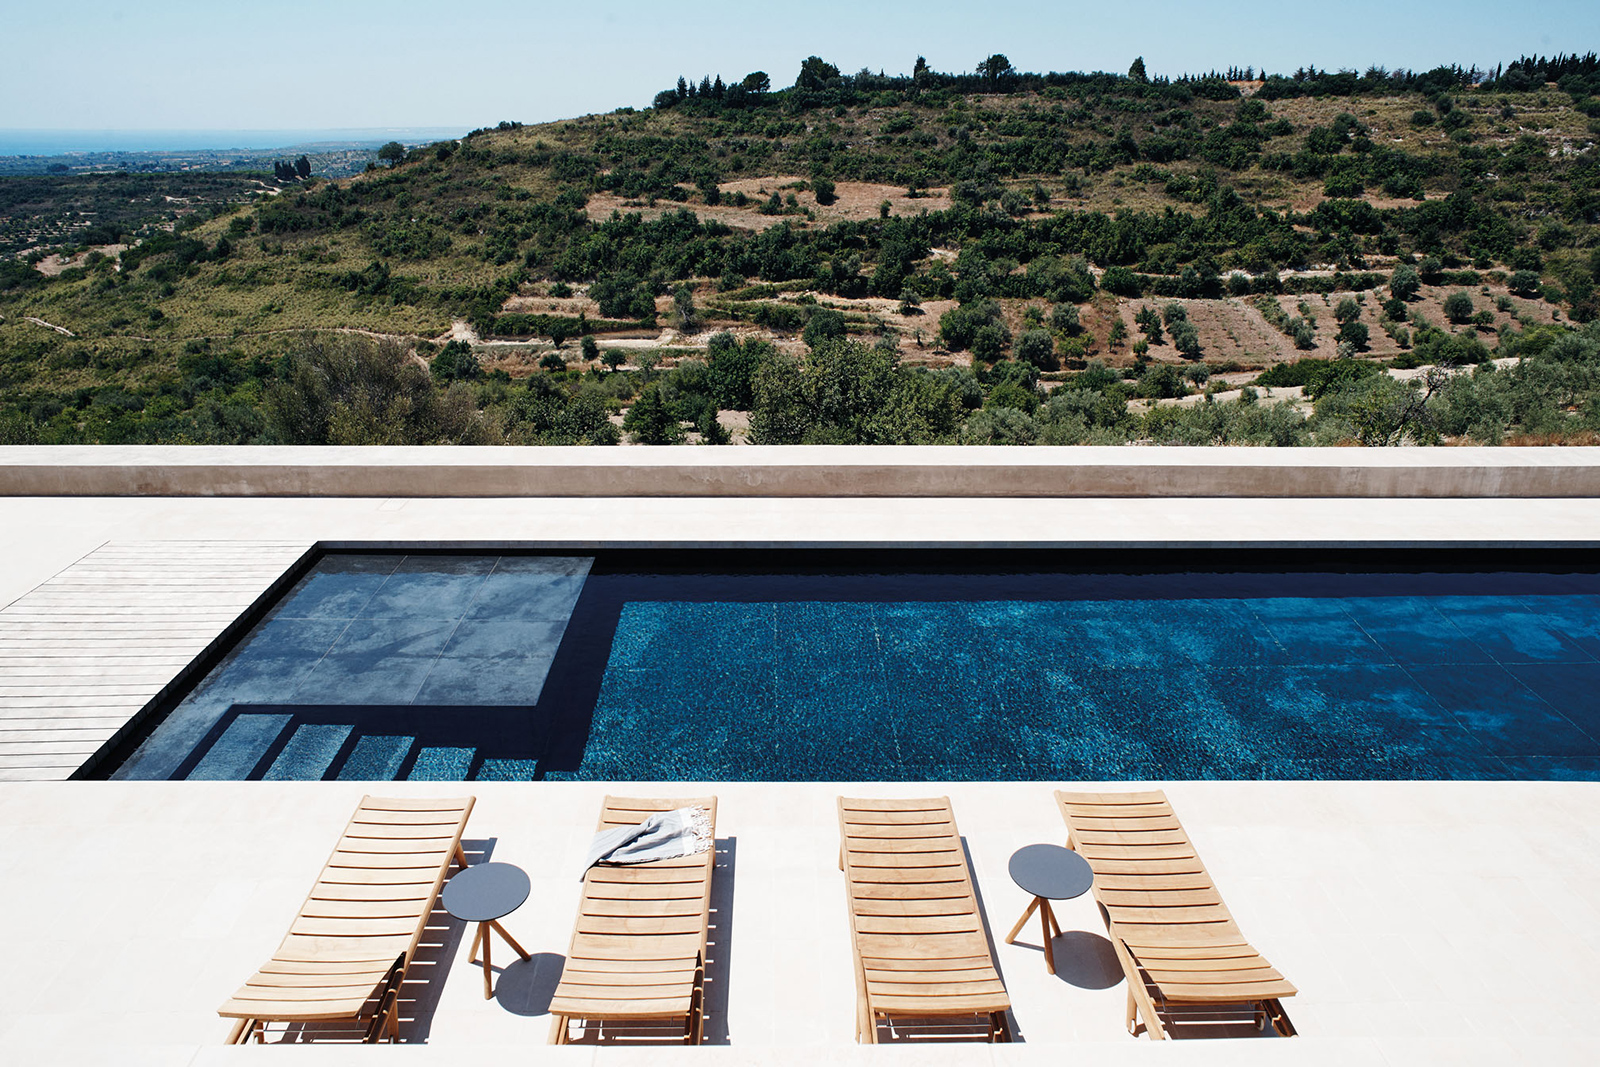 Casa Vera - architect-designed holiday home for rent in Sicily, Italy